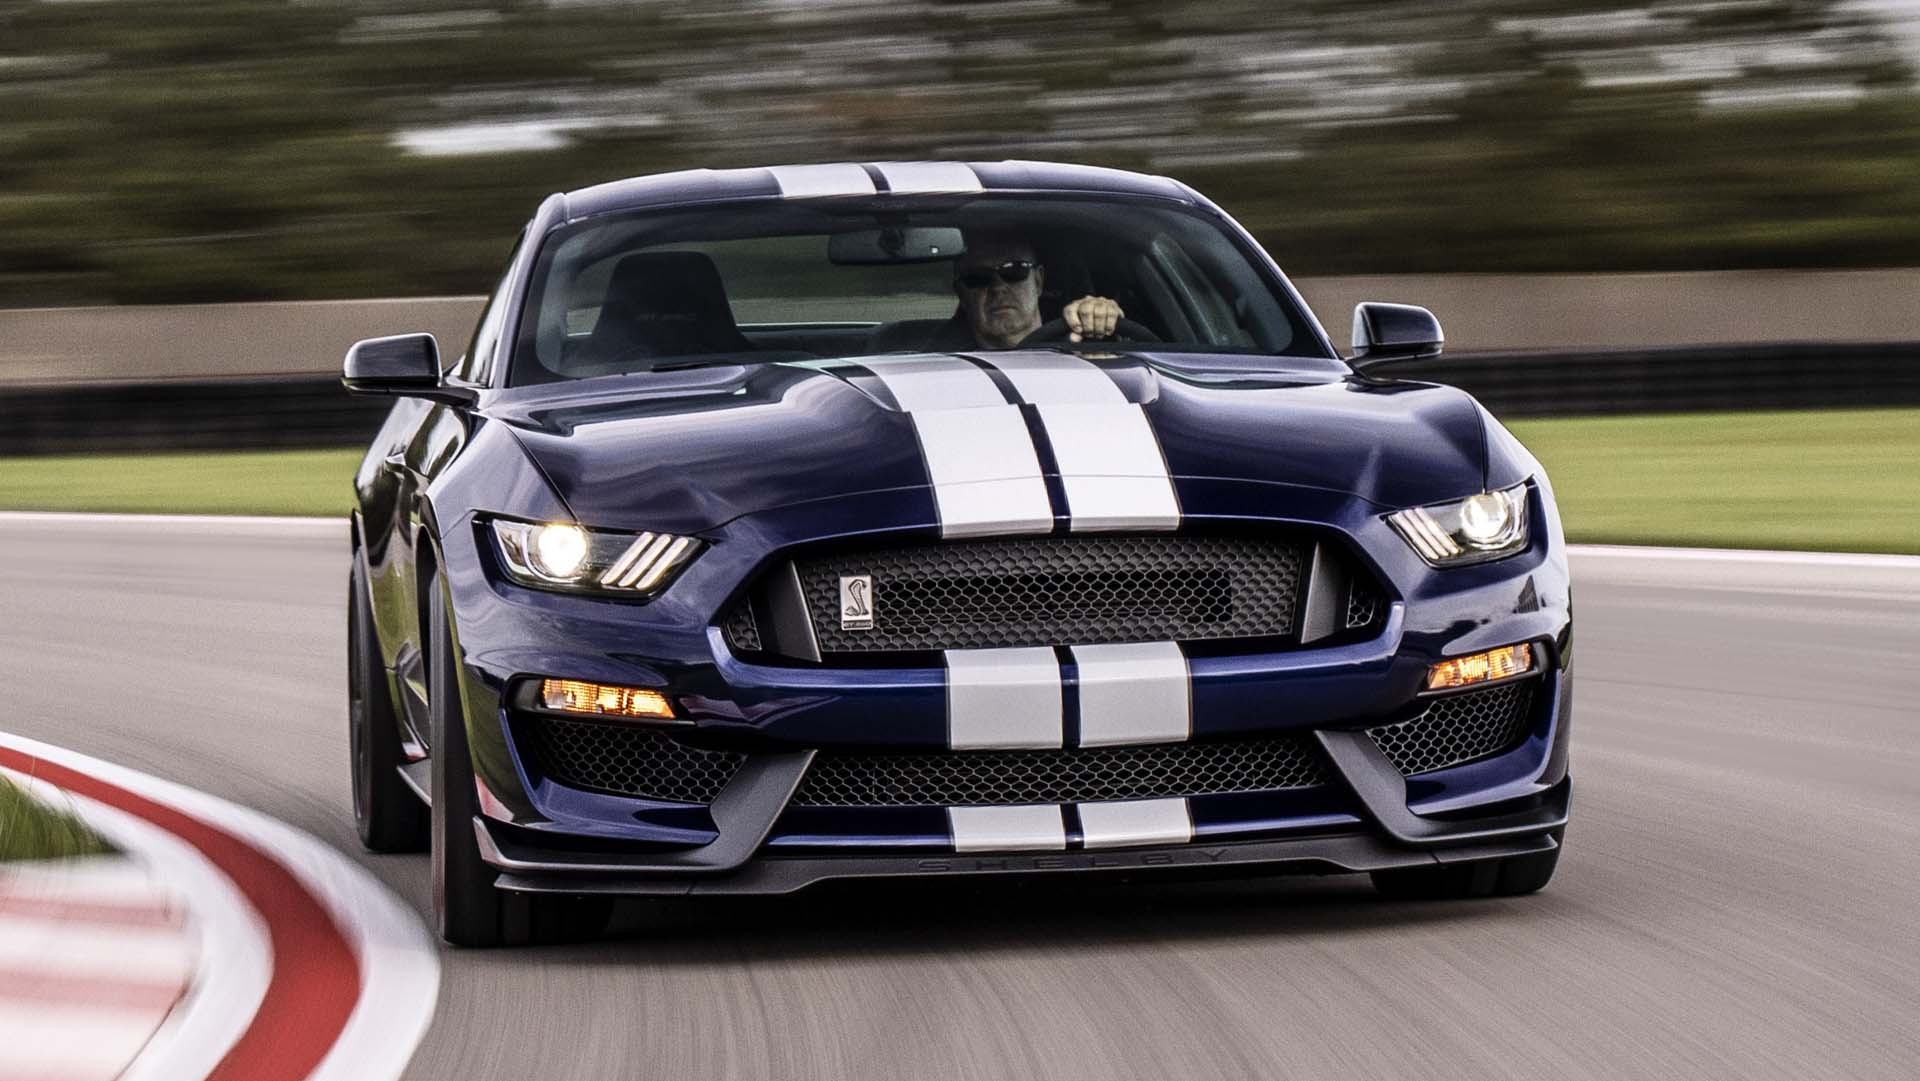 2019 ford mustang shelby gt350 thunders in with upgraded aero tires